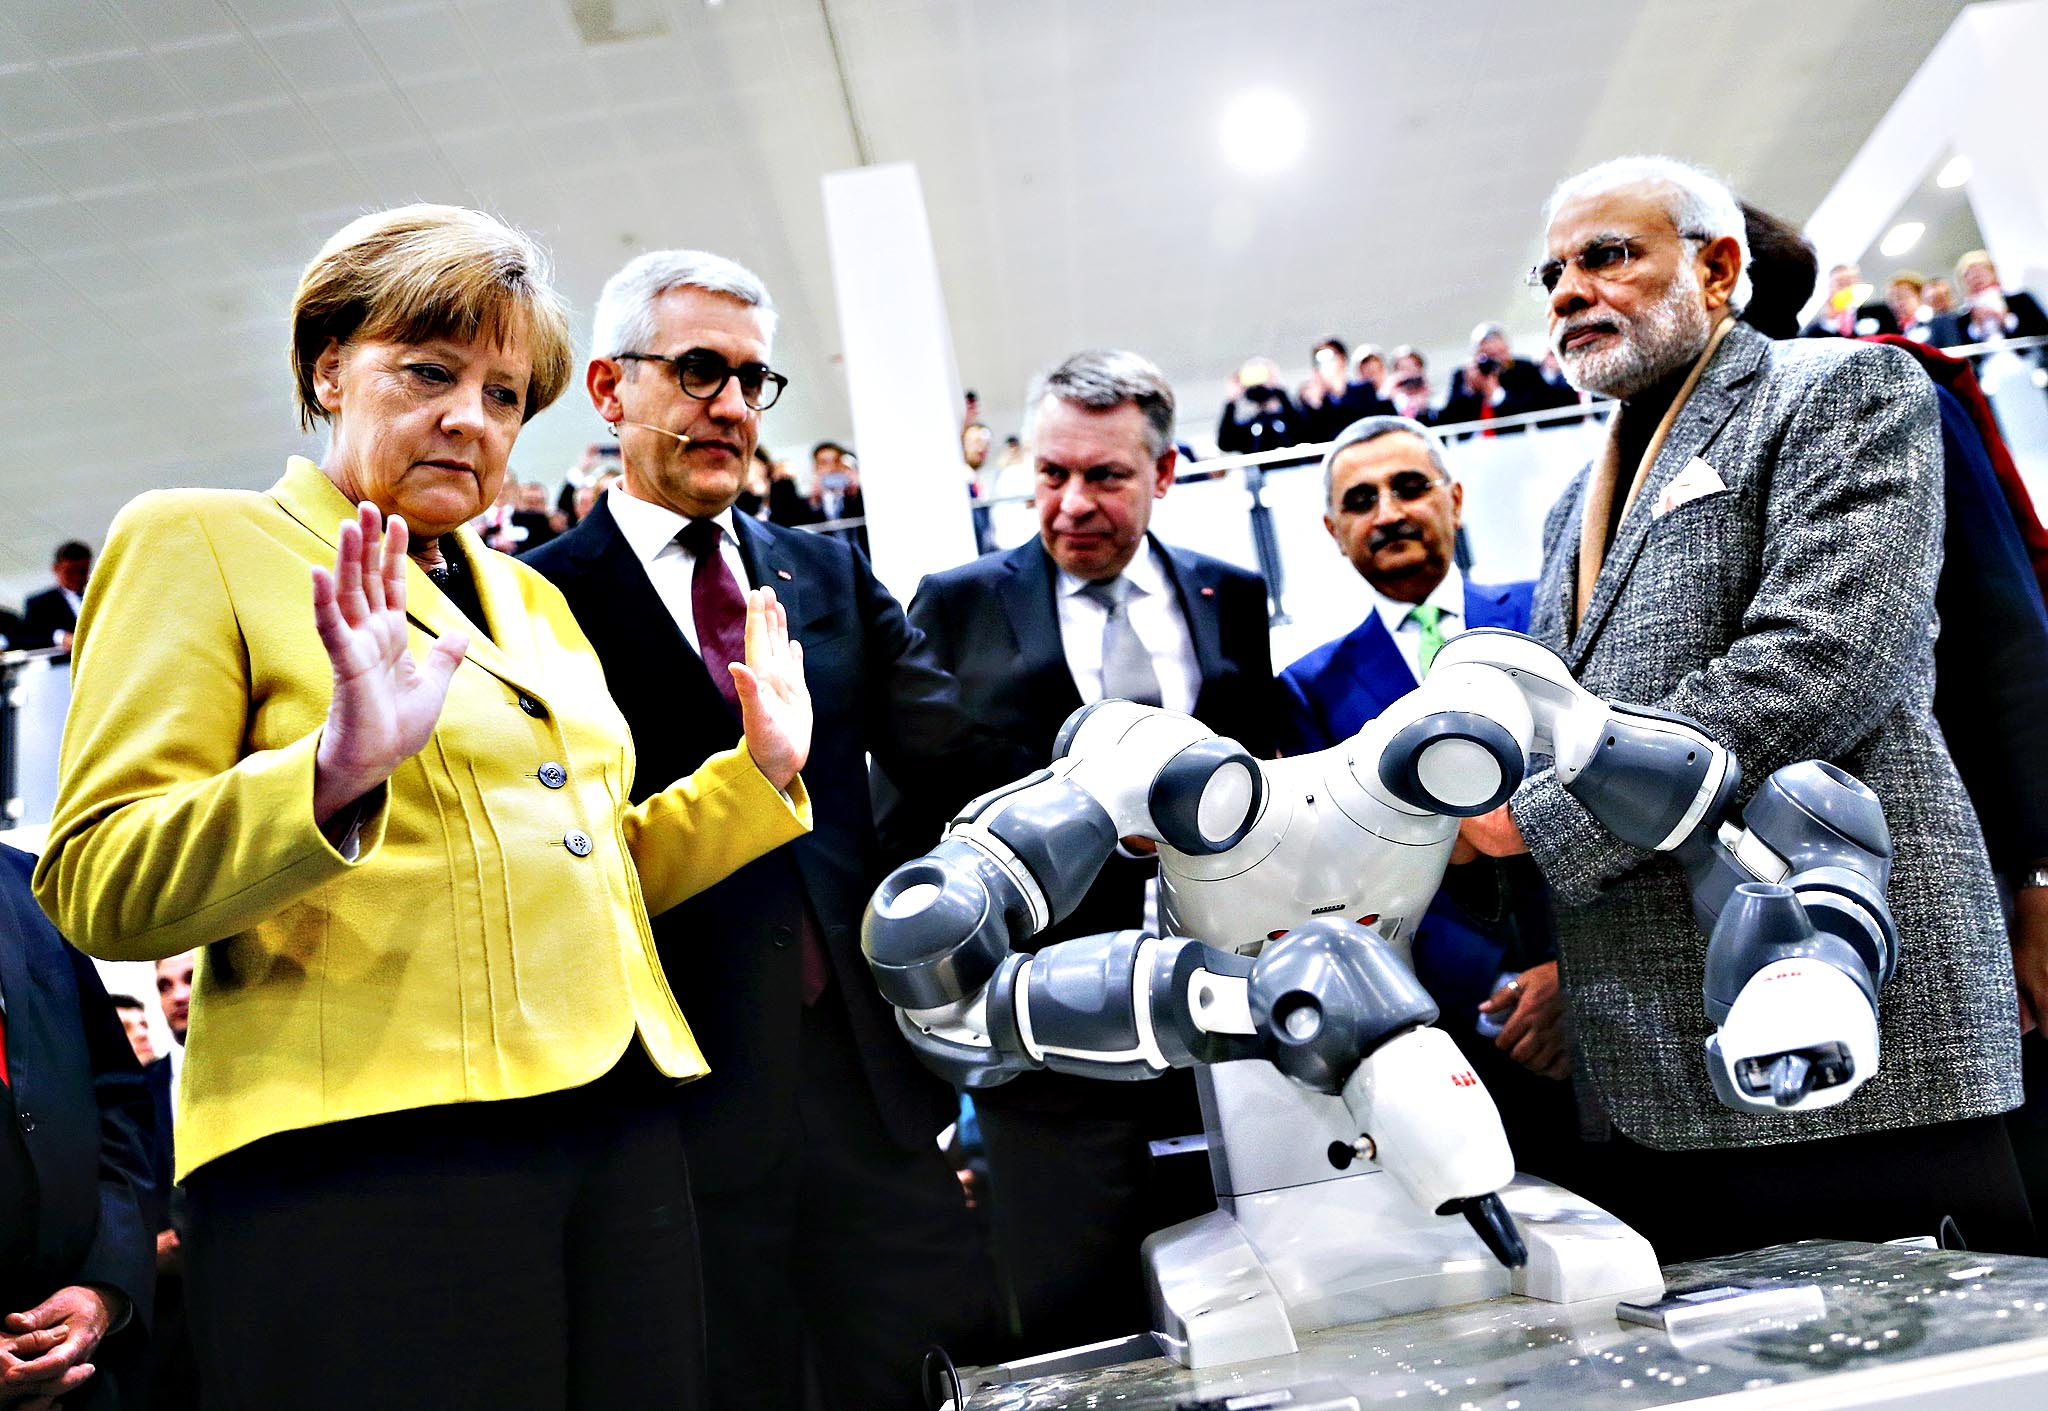 German Chancellor Merkel and Indian Prime Minister Modi look at a UMI robotic arm at the world's largest industrial technology fair, the Hannover Messe, in Hanover...German Chancellor Angela Merkel and Indian Prime Minister Narendra Modi (R) look at a UMI robotic arm at the world's largest industrial technology fair, the Hannover Messe, in Hanover April 13, 2015.